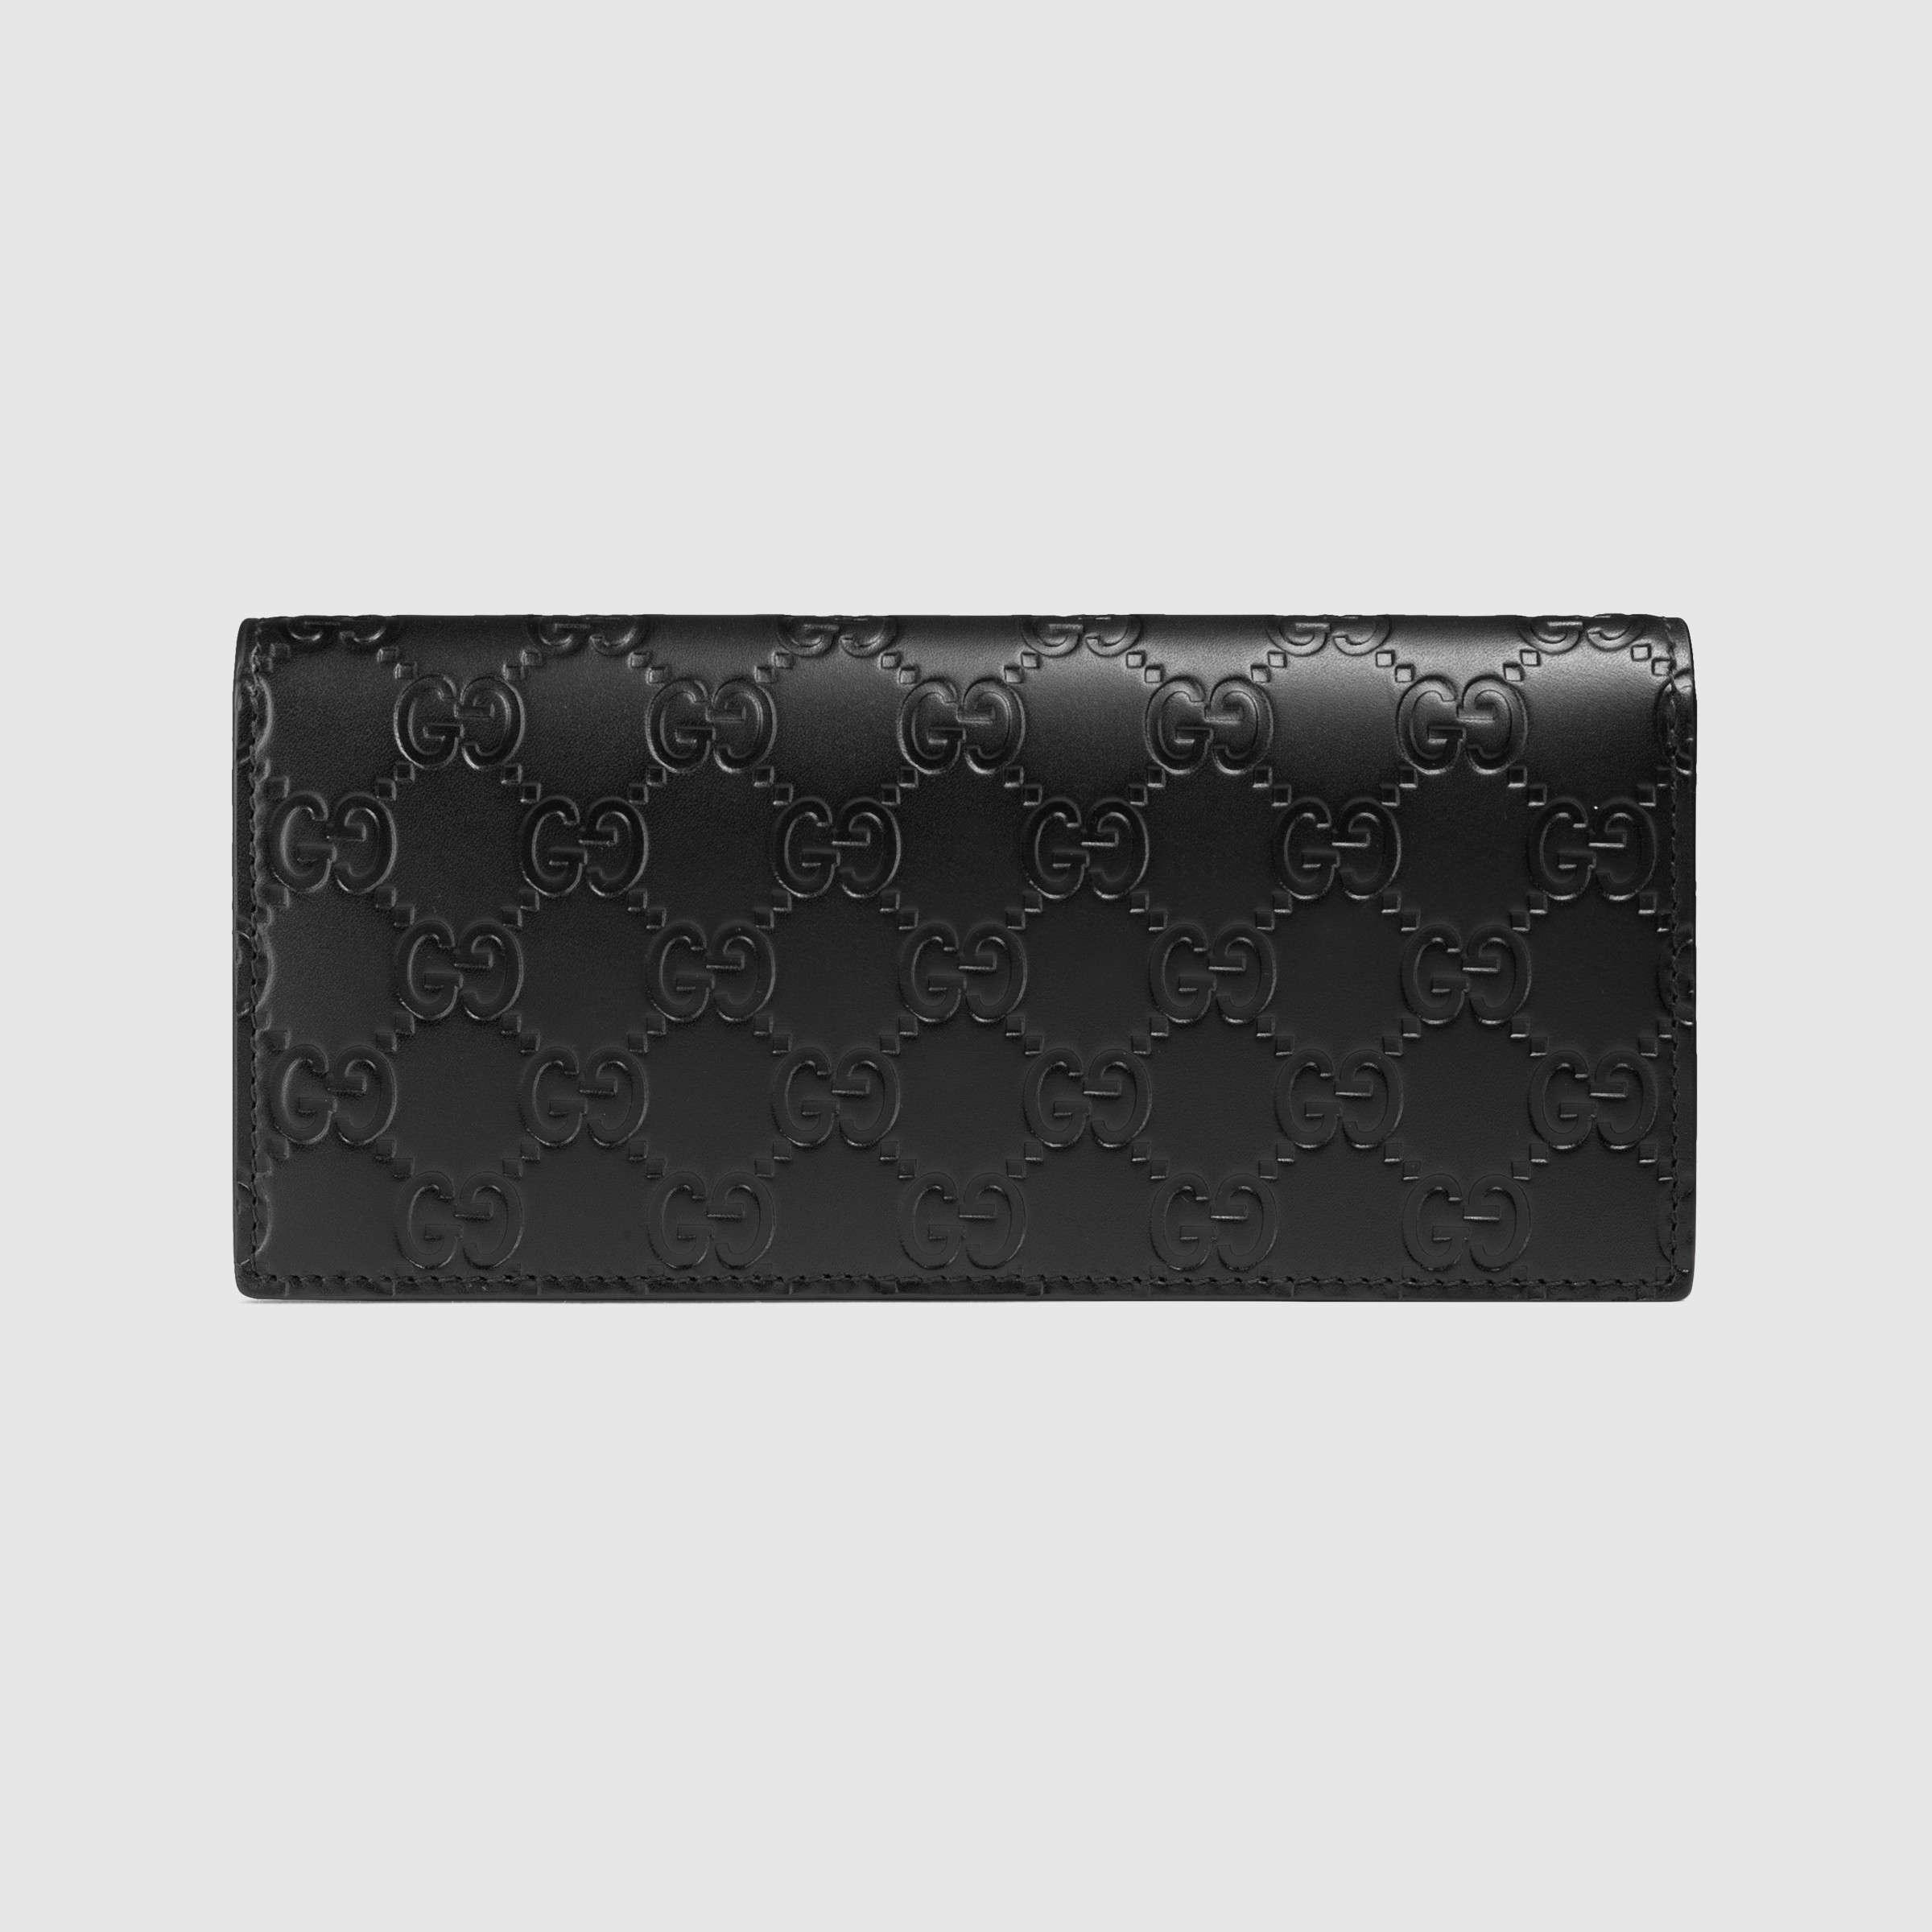 22957fc4b740 Gucci Signature Long Coin Wallet in Black for Men - Lyst